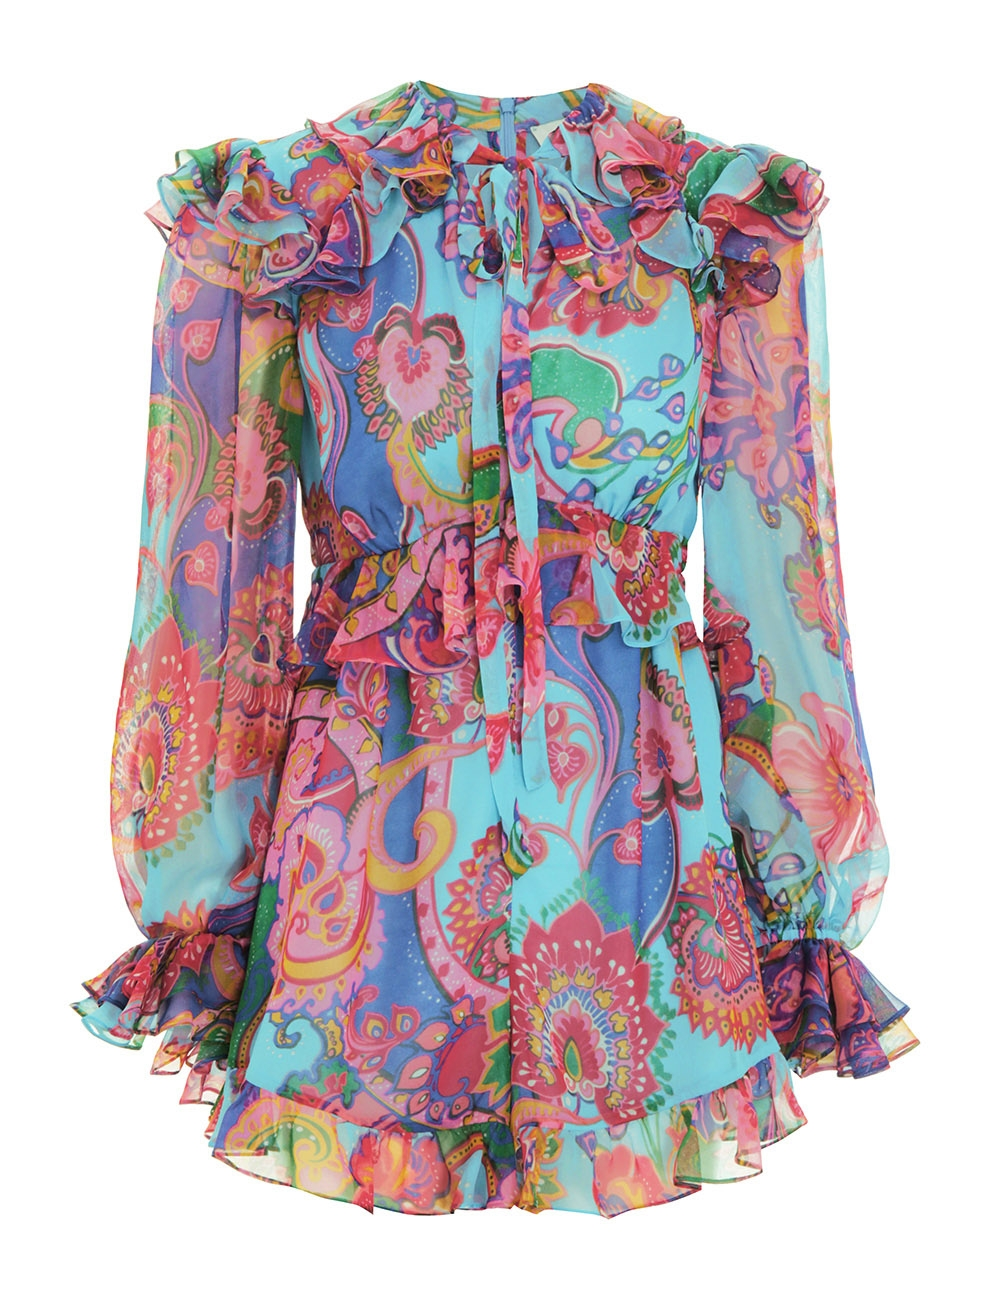 The Lovestruck Playsuit